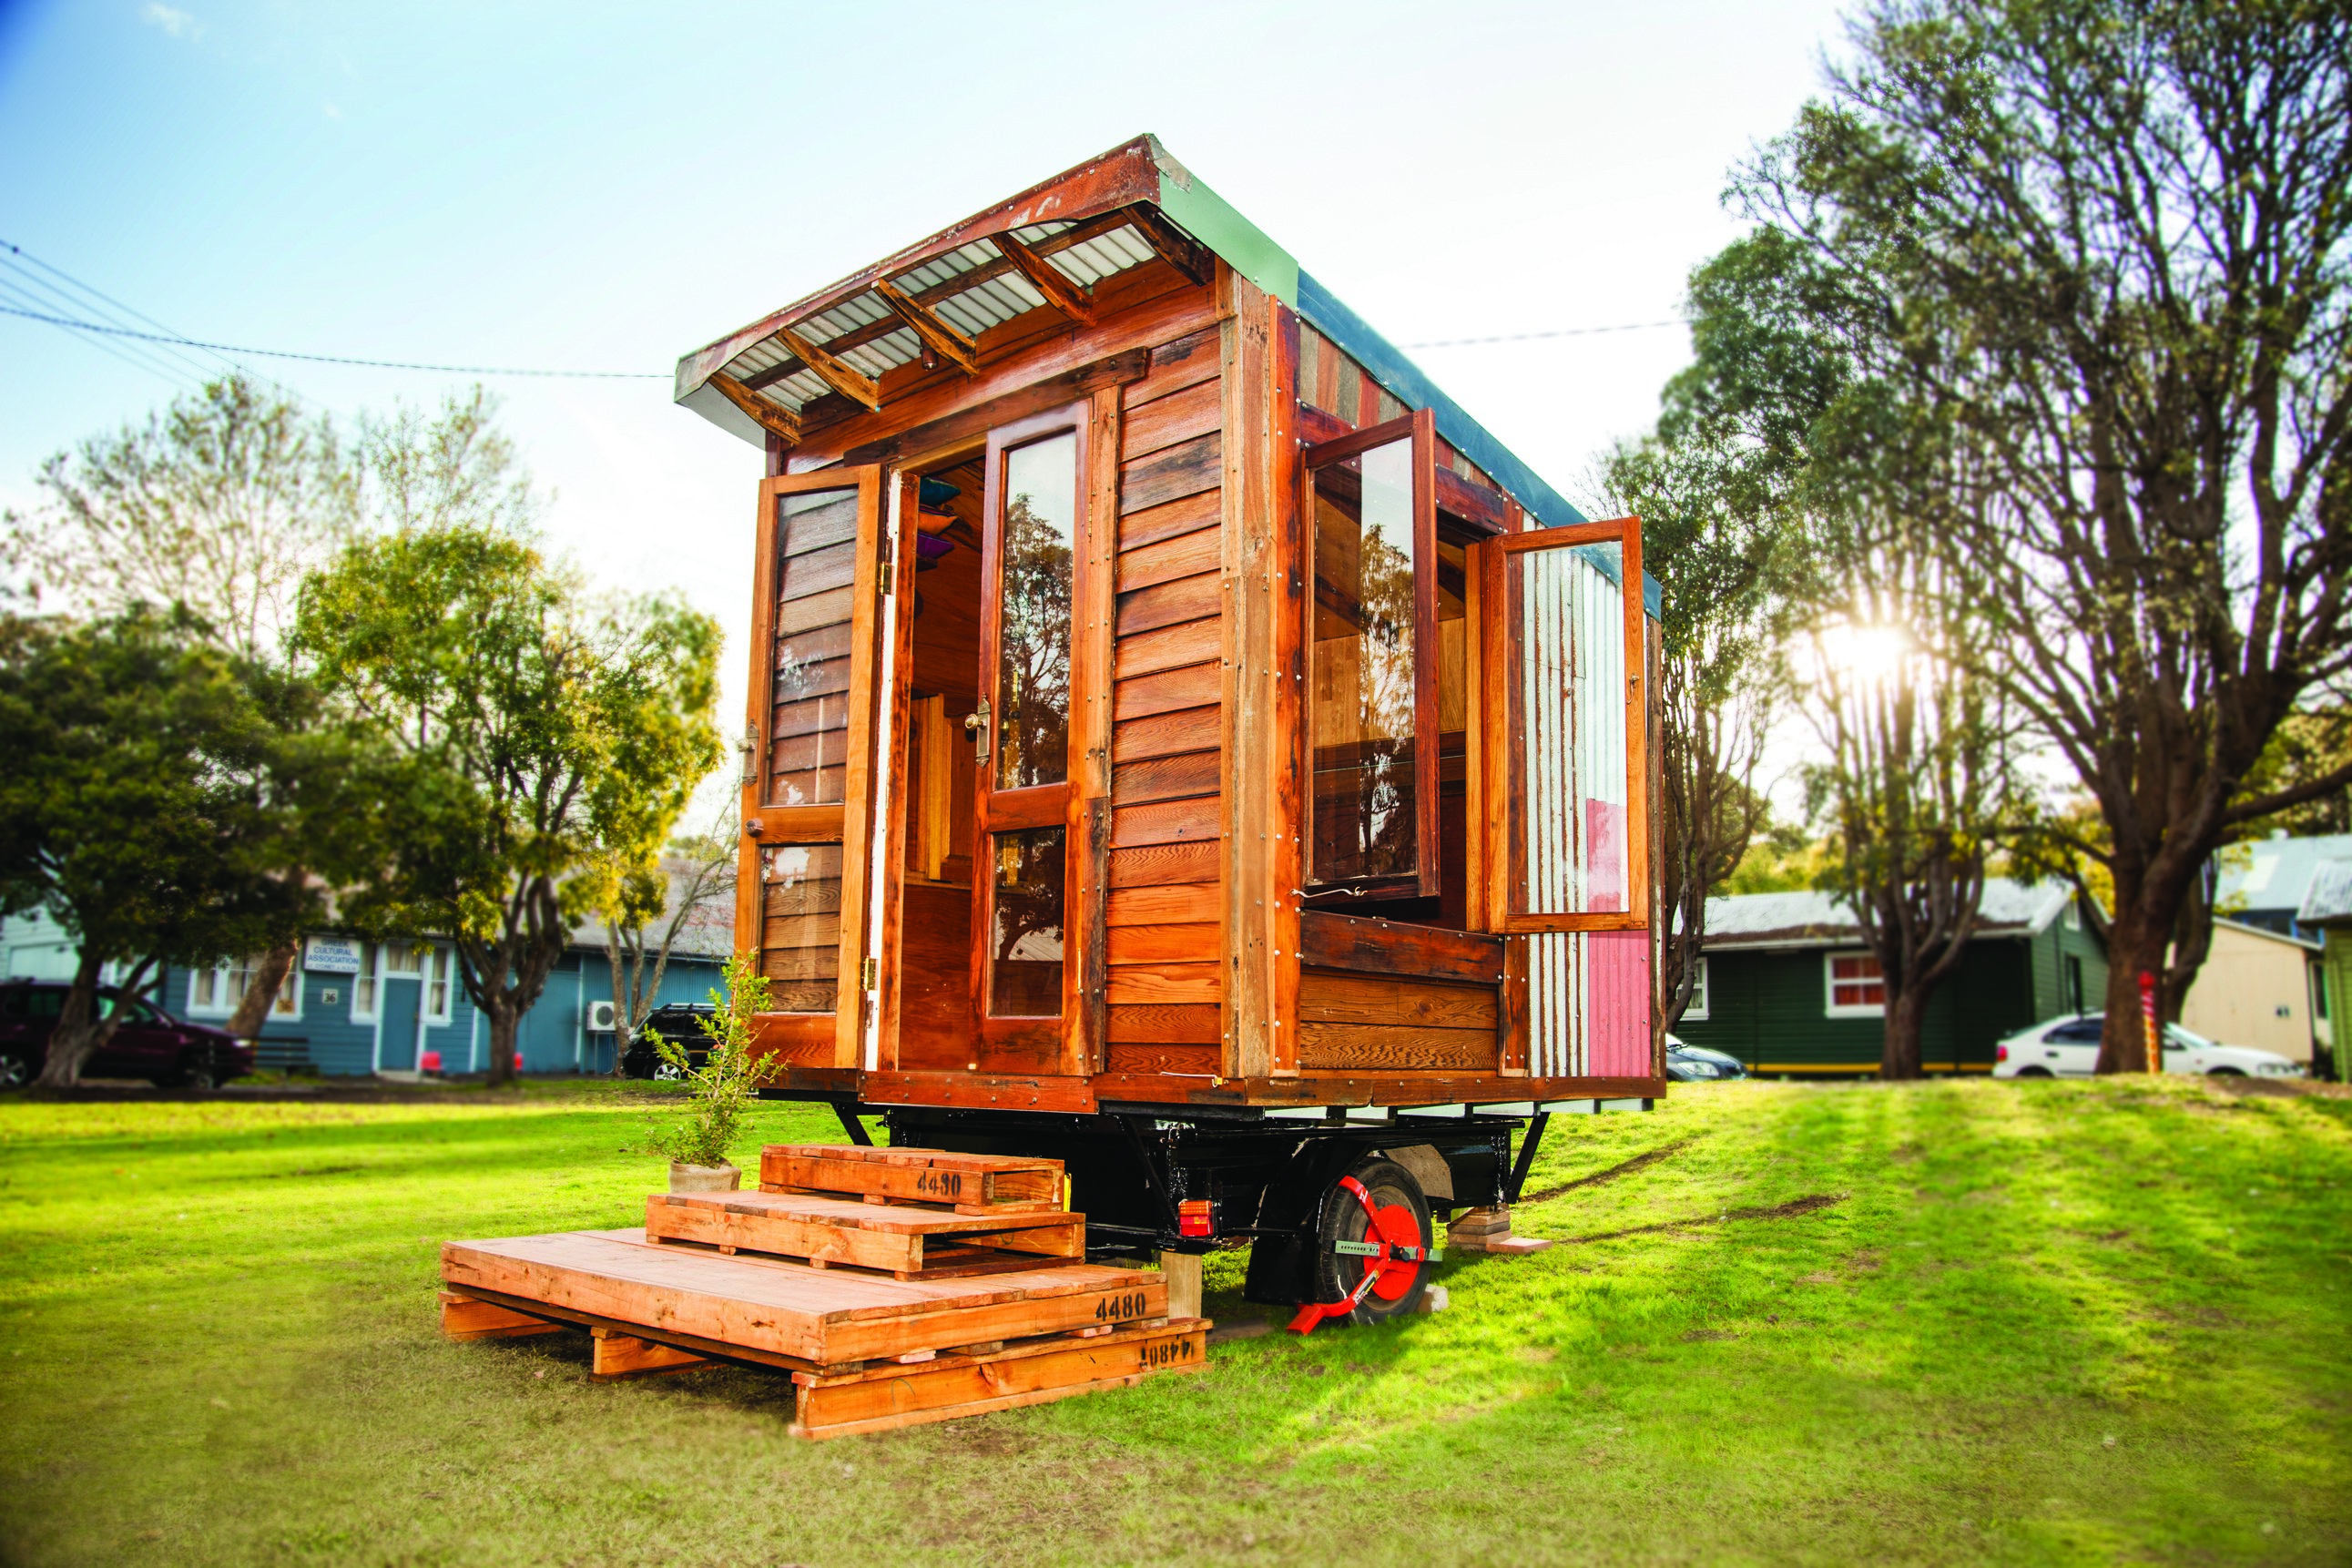 5 Tiny Houses Made From Recycled Materials Huffpost Life House Wiring Under Floorboards 2016 06 29 1467227419 6633518 4tinyhousesrecycledmaterials03